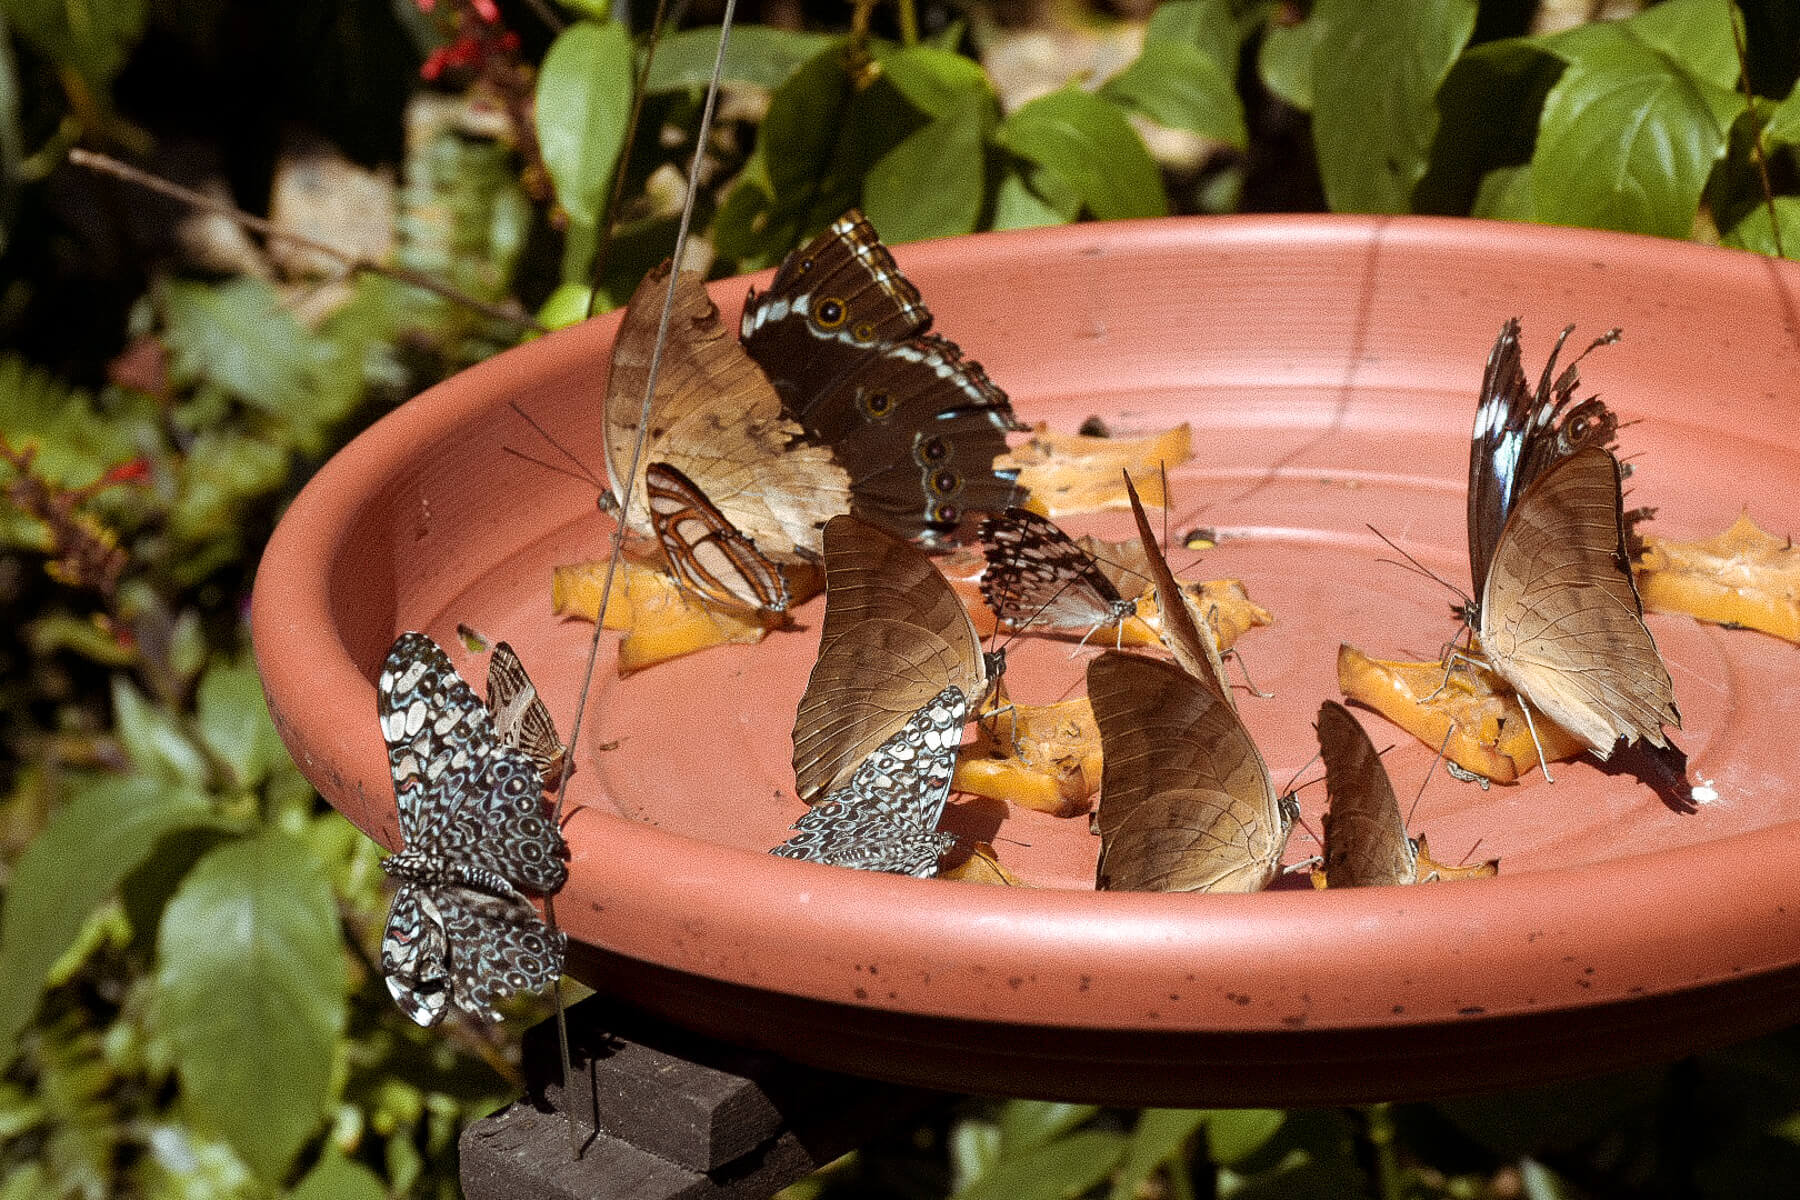 11 butterflies eating starfruit from a bright orange dish